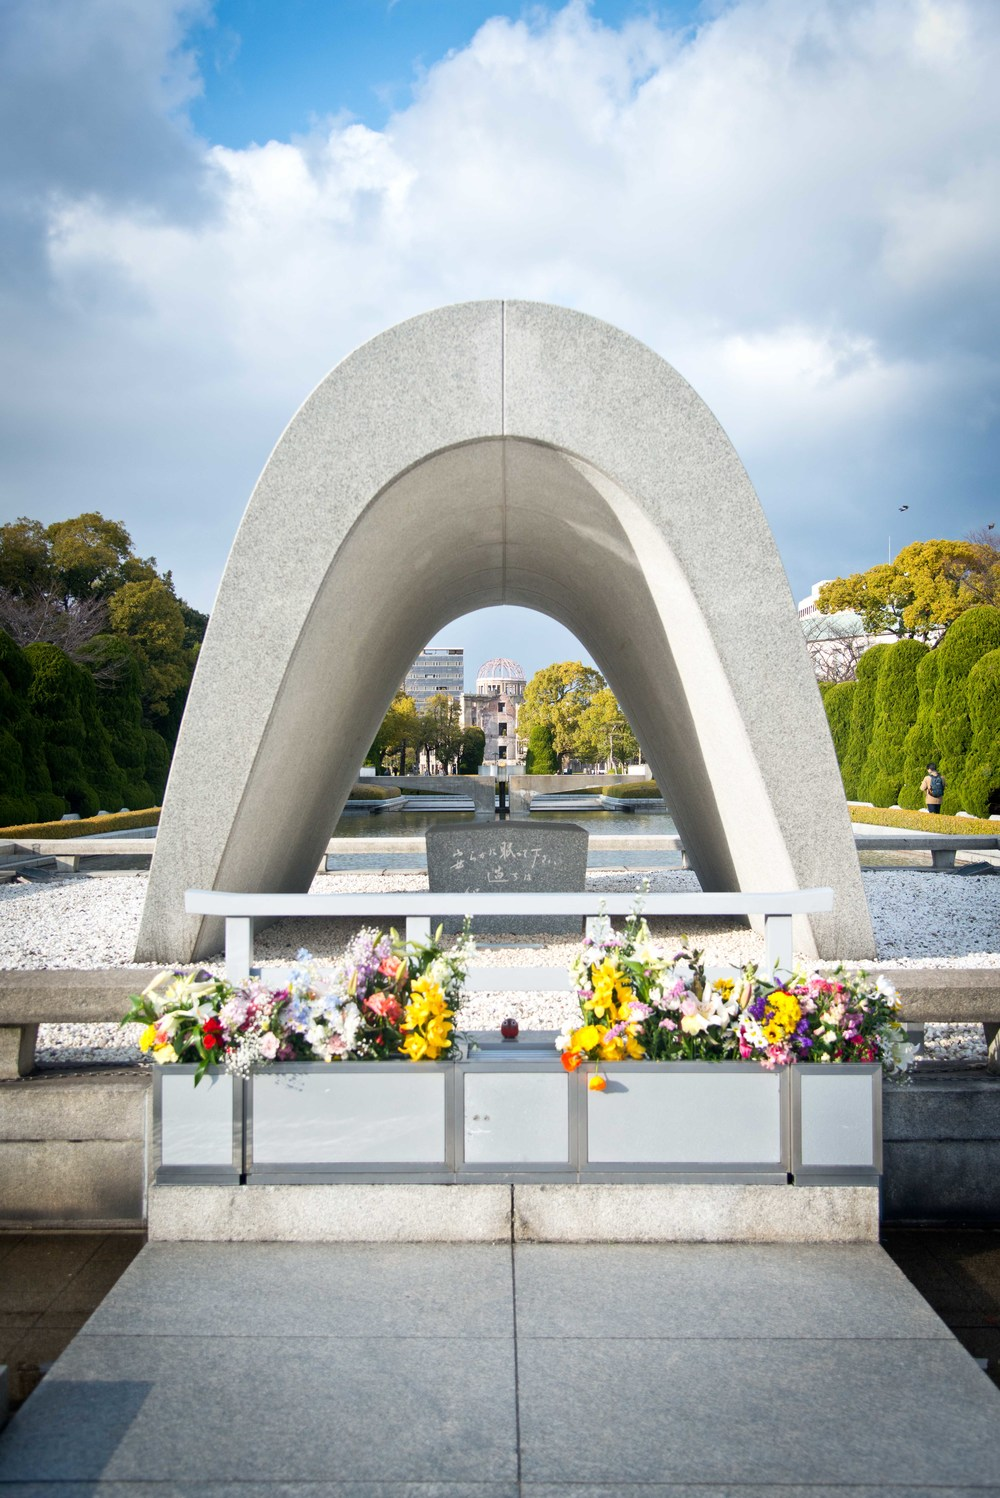 The Cenotaph, home to the eternal flame. The arch is intended to serve as a shelter to the 70,000 souls lost to the atomic bomb.